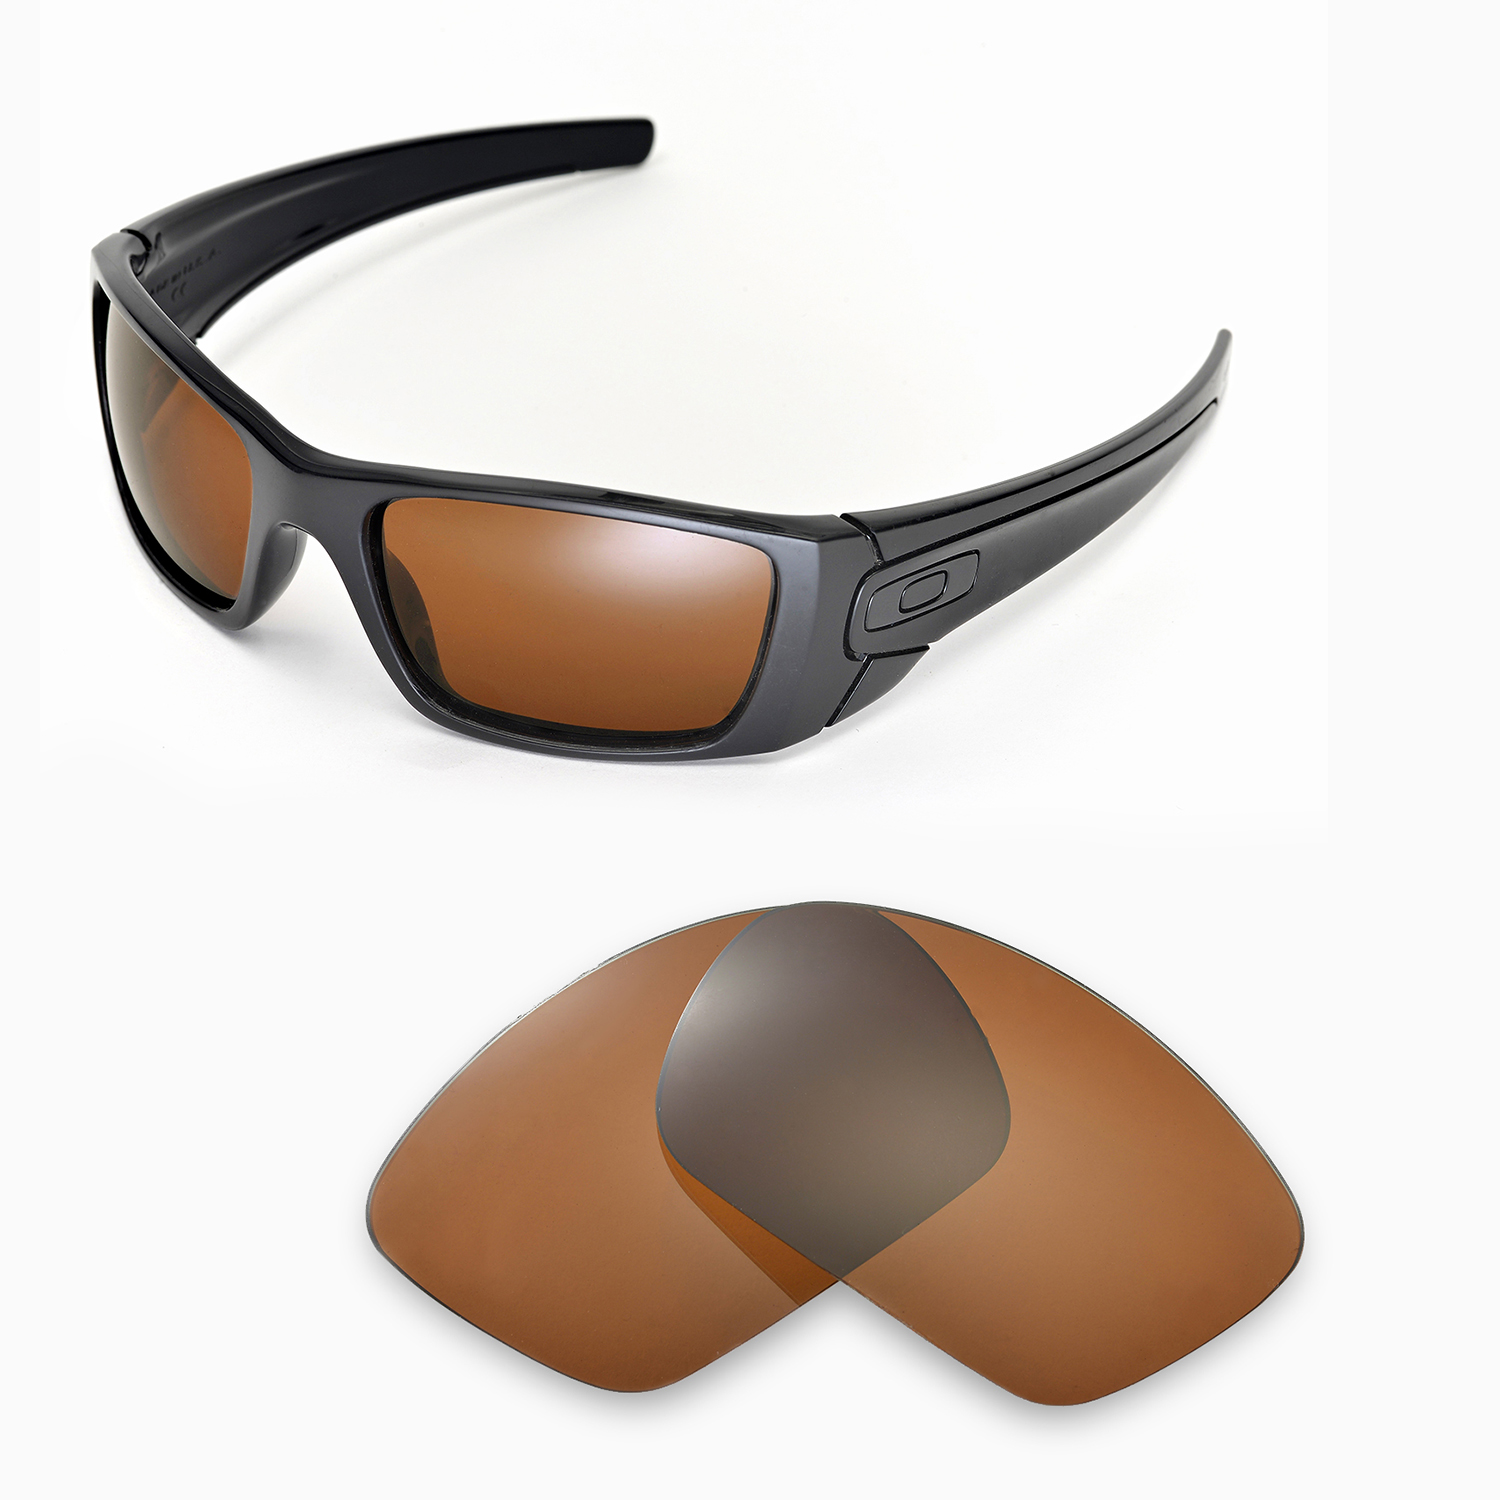 6f687e1ad1 Walleva Polarized Brown Lenses for Oakley Fuel Cell x1  Walleva Microfiber  Lens Cleaning Cloth x1. main image